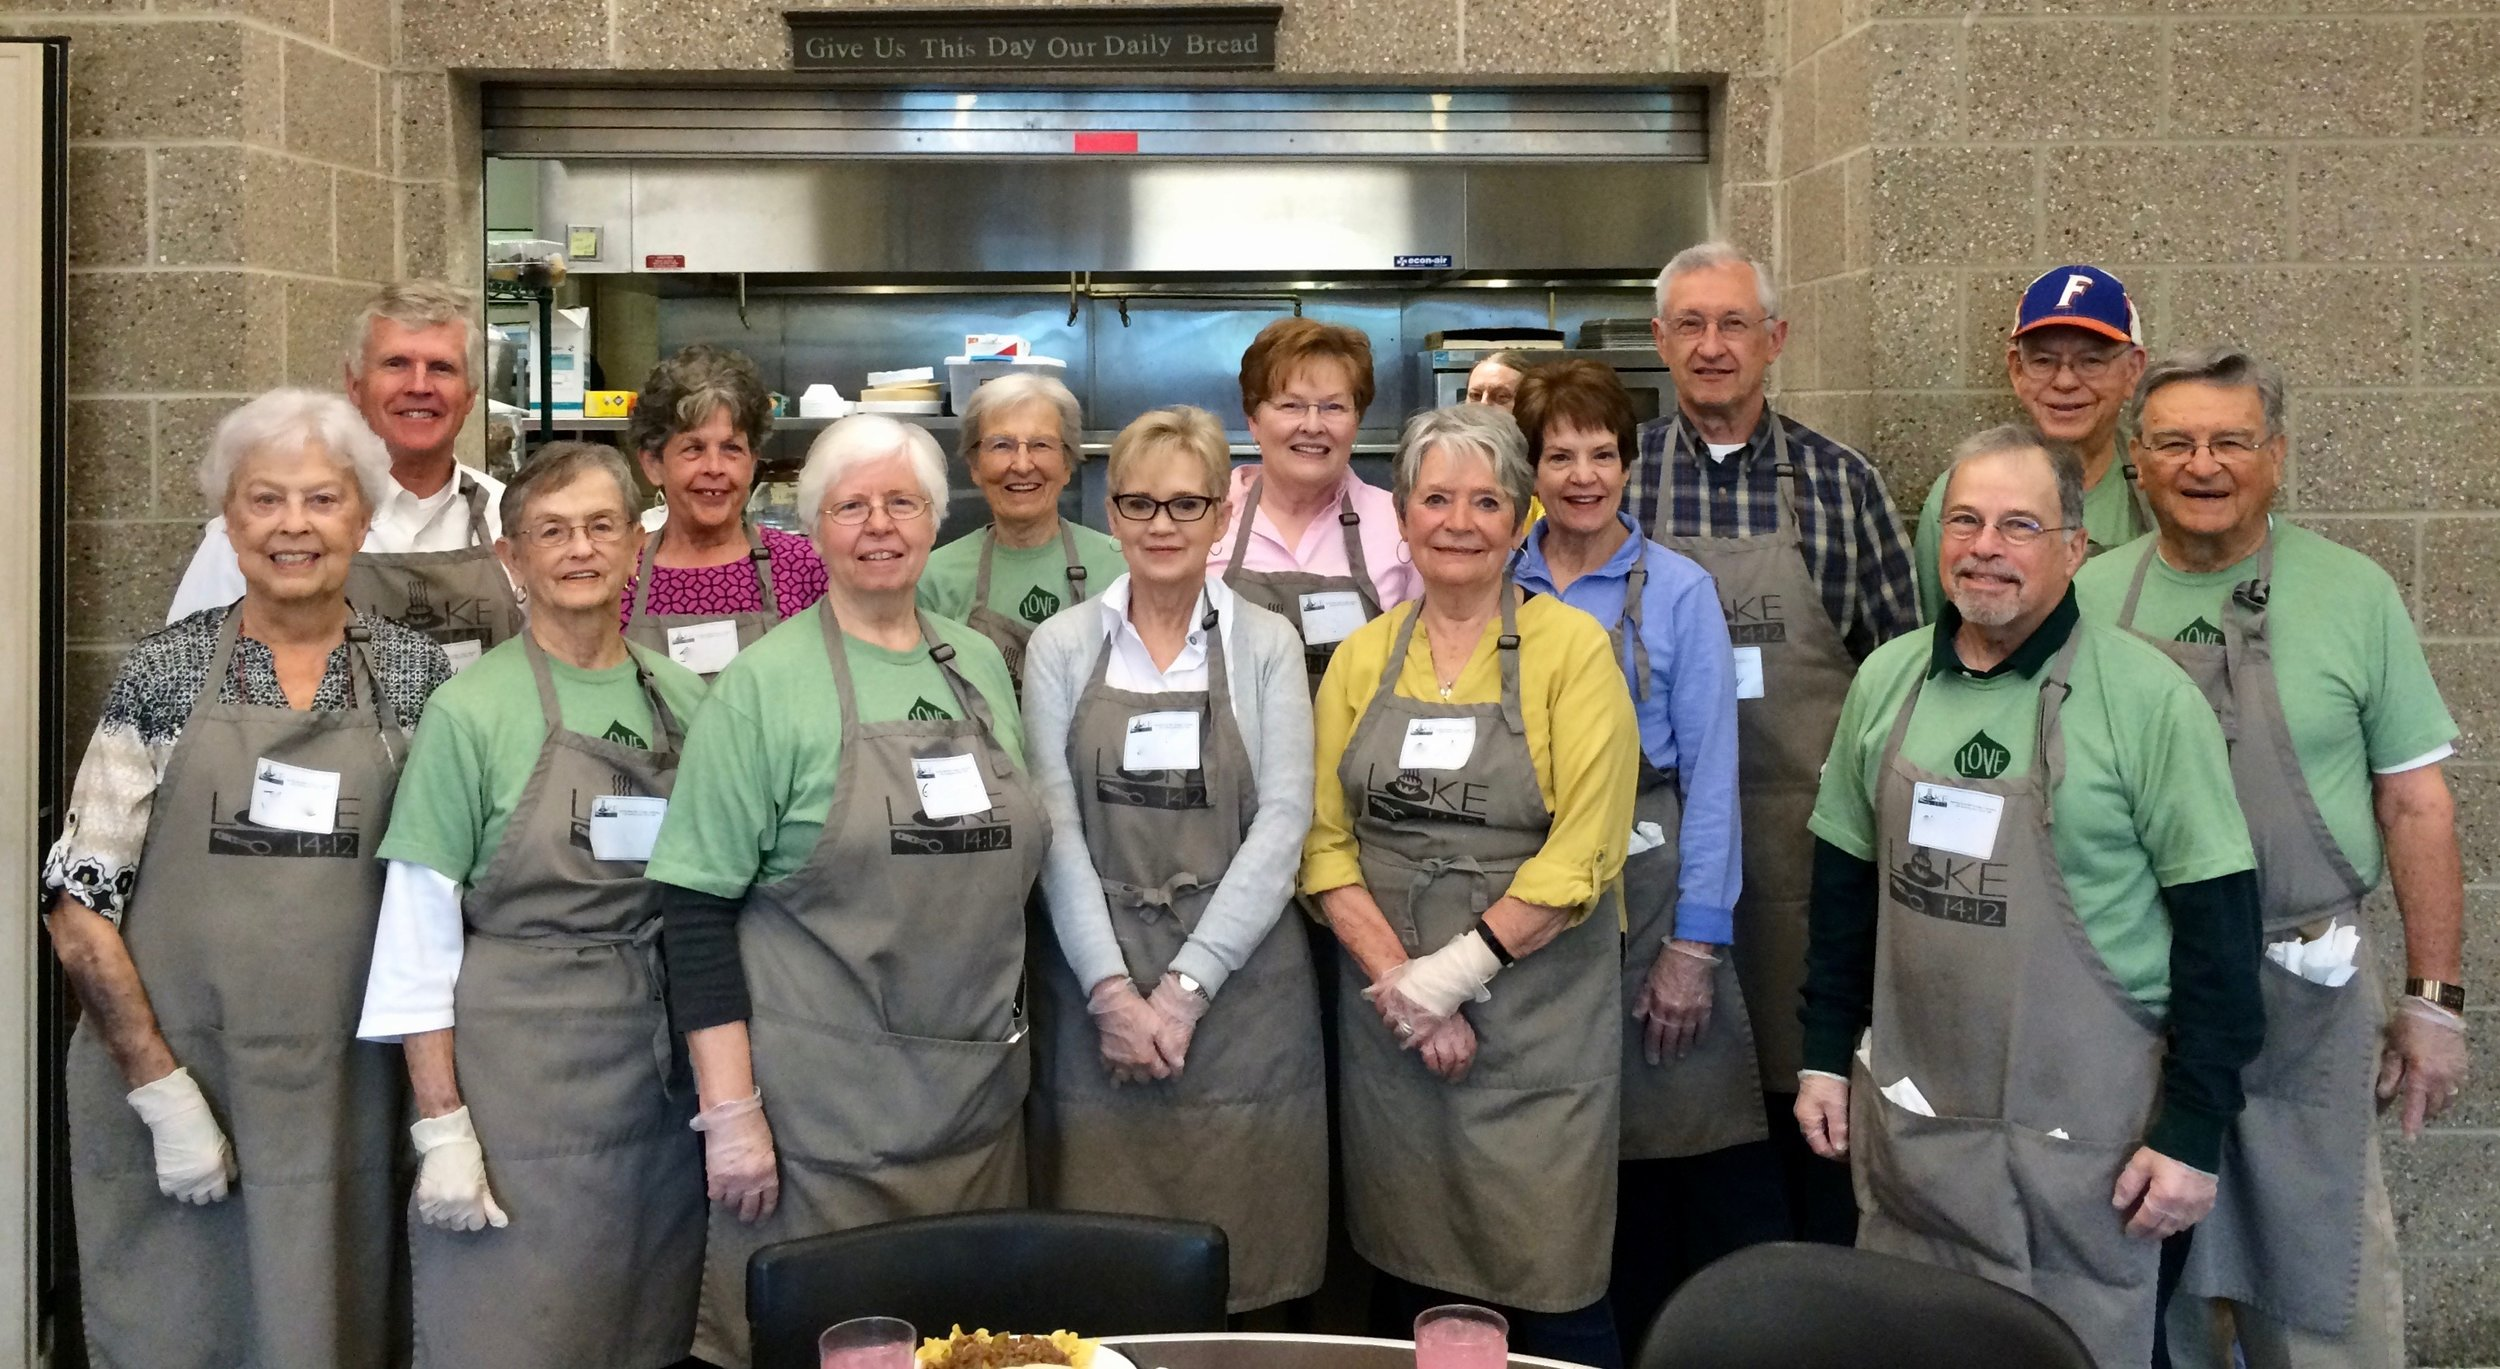 Many of Immanuel's senior adults regularly serve lunch to our homeless neighbors at Luke 14:12.